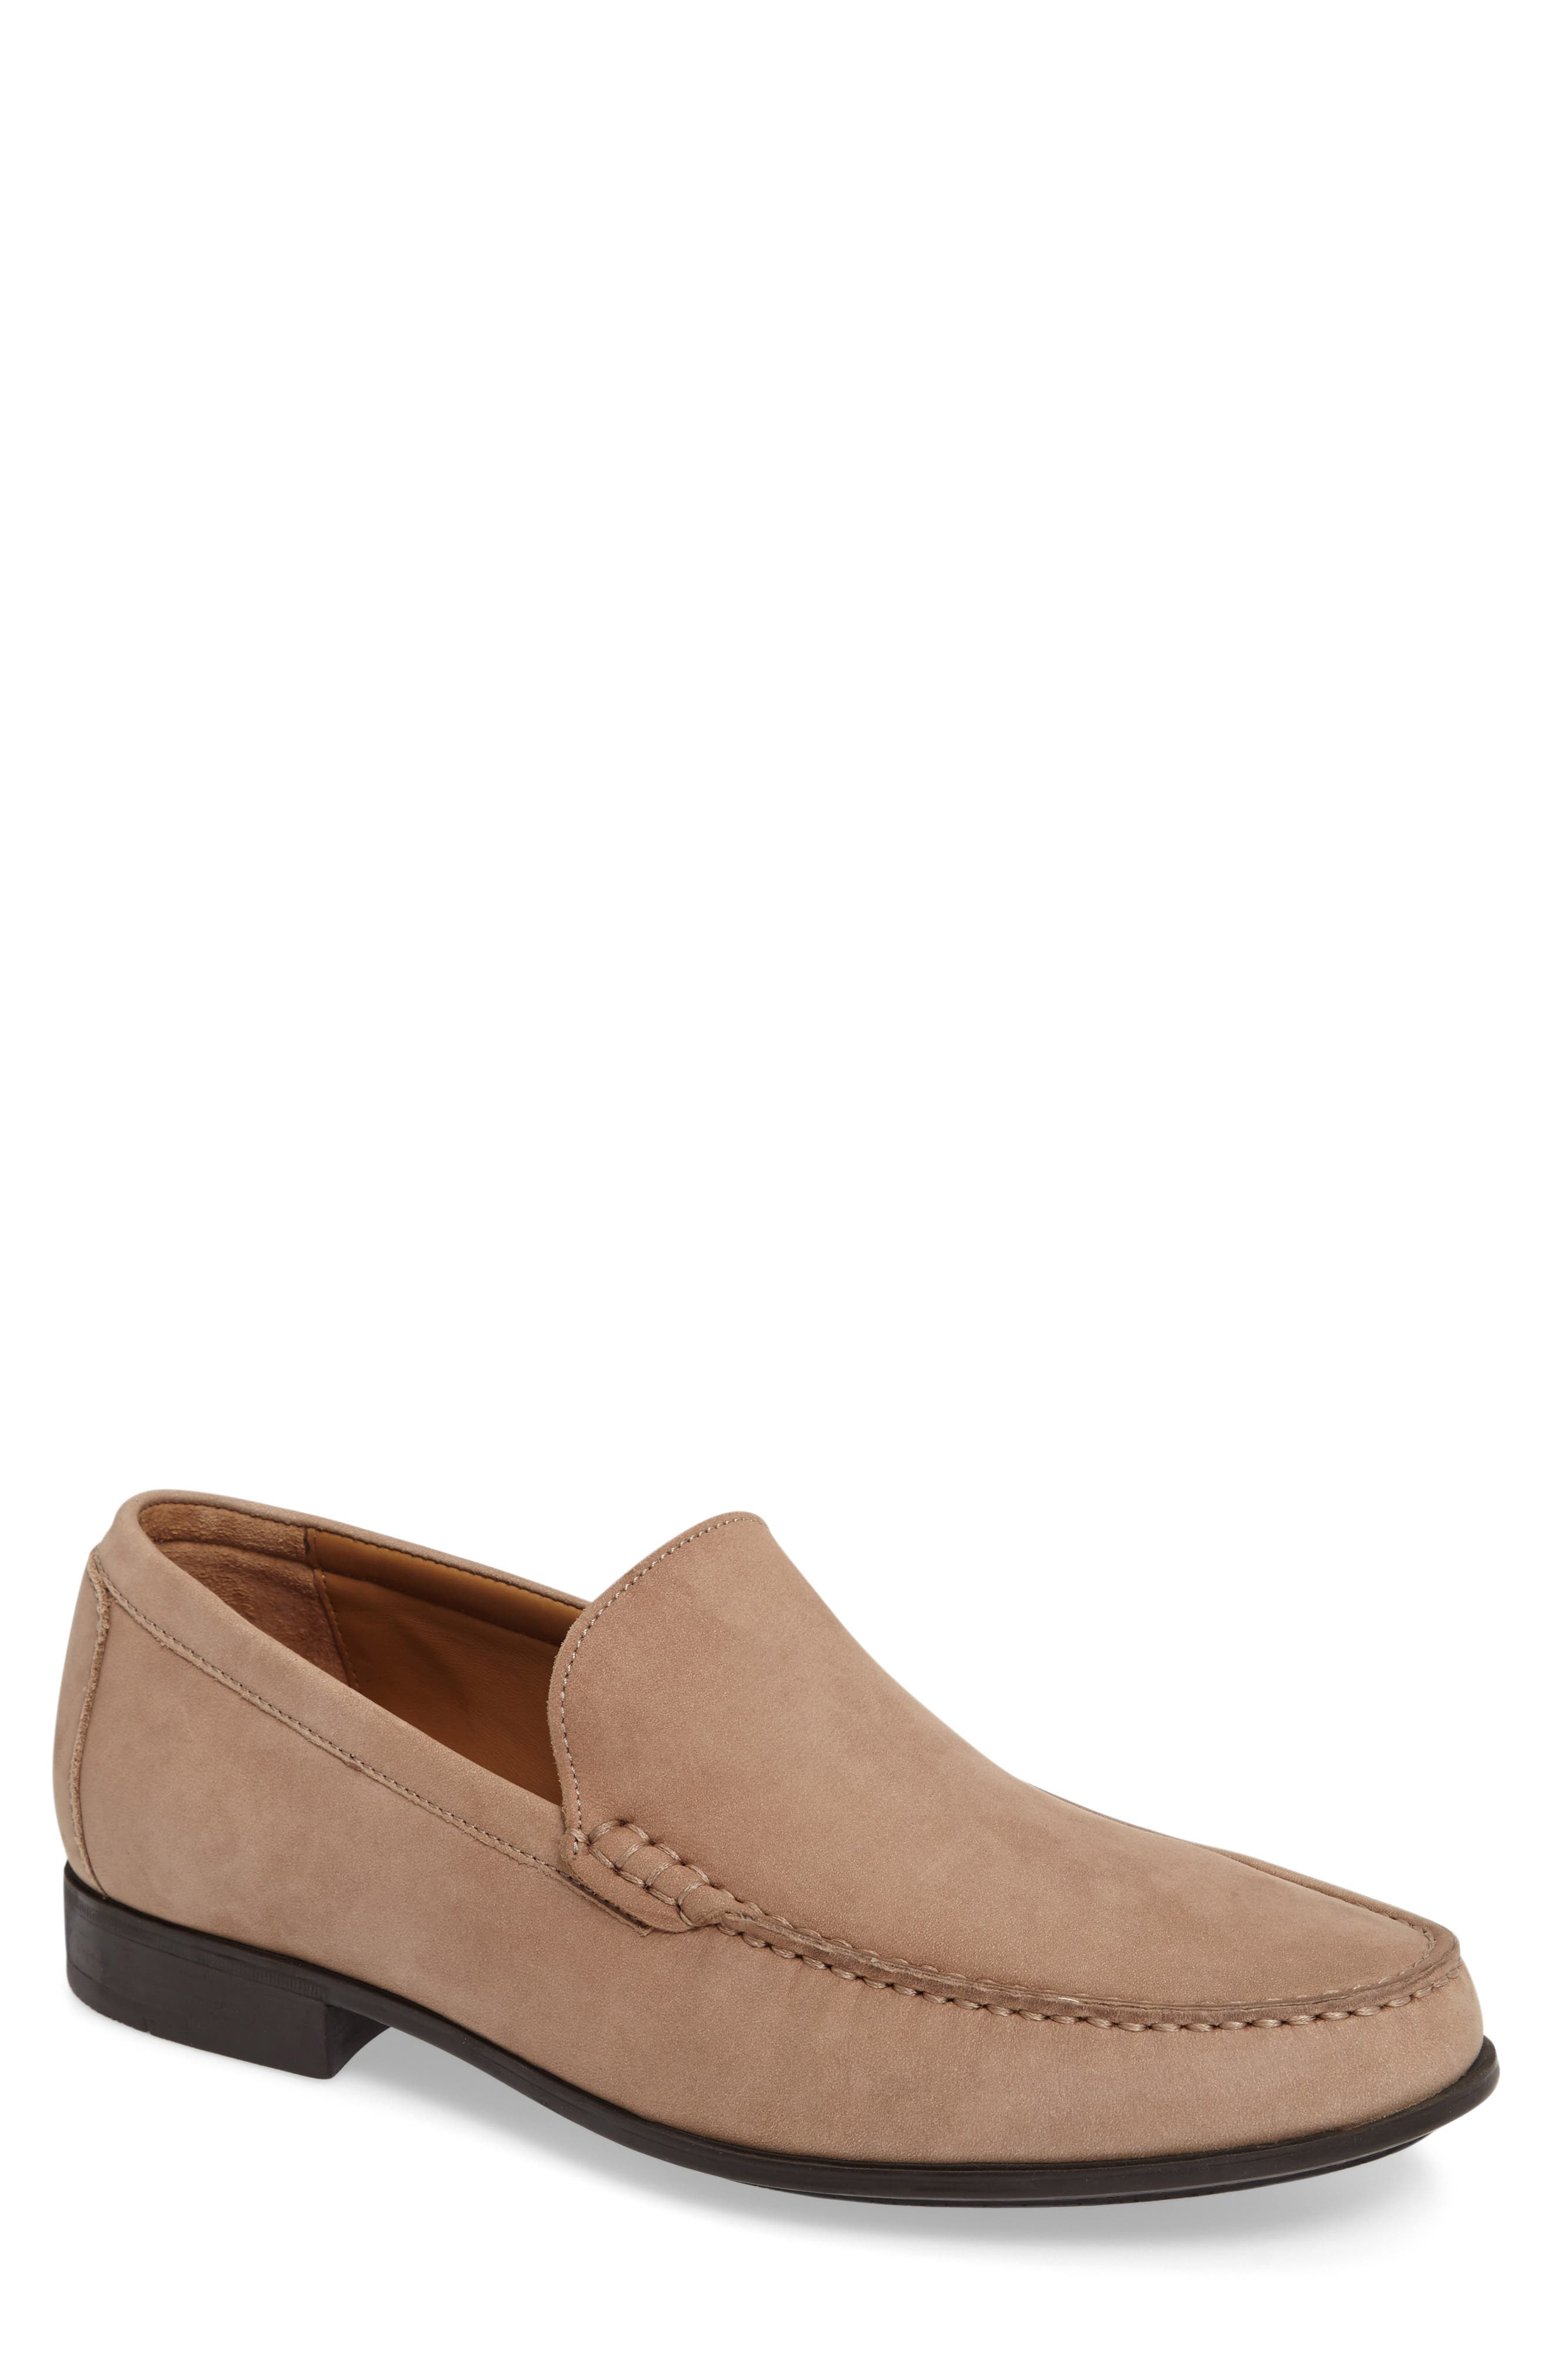 Cresswell Venetian Loafer,                             Main thumbnail 1, color,                             Sand Nubuck Leather